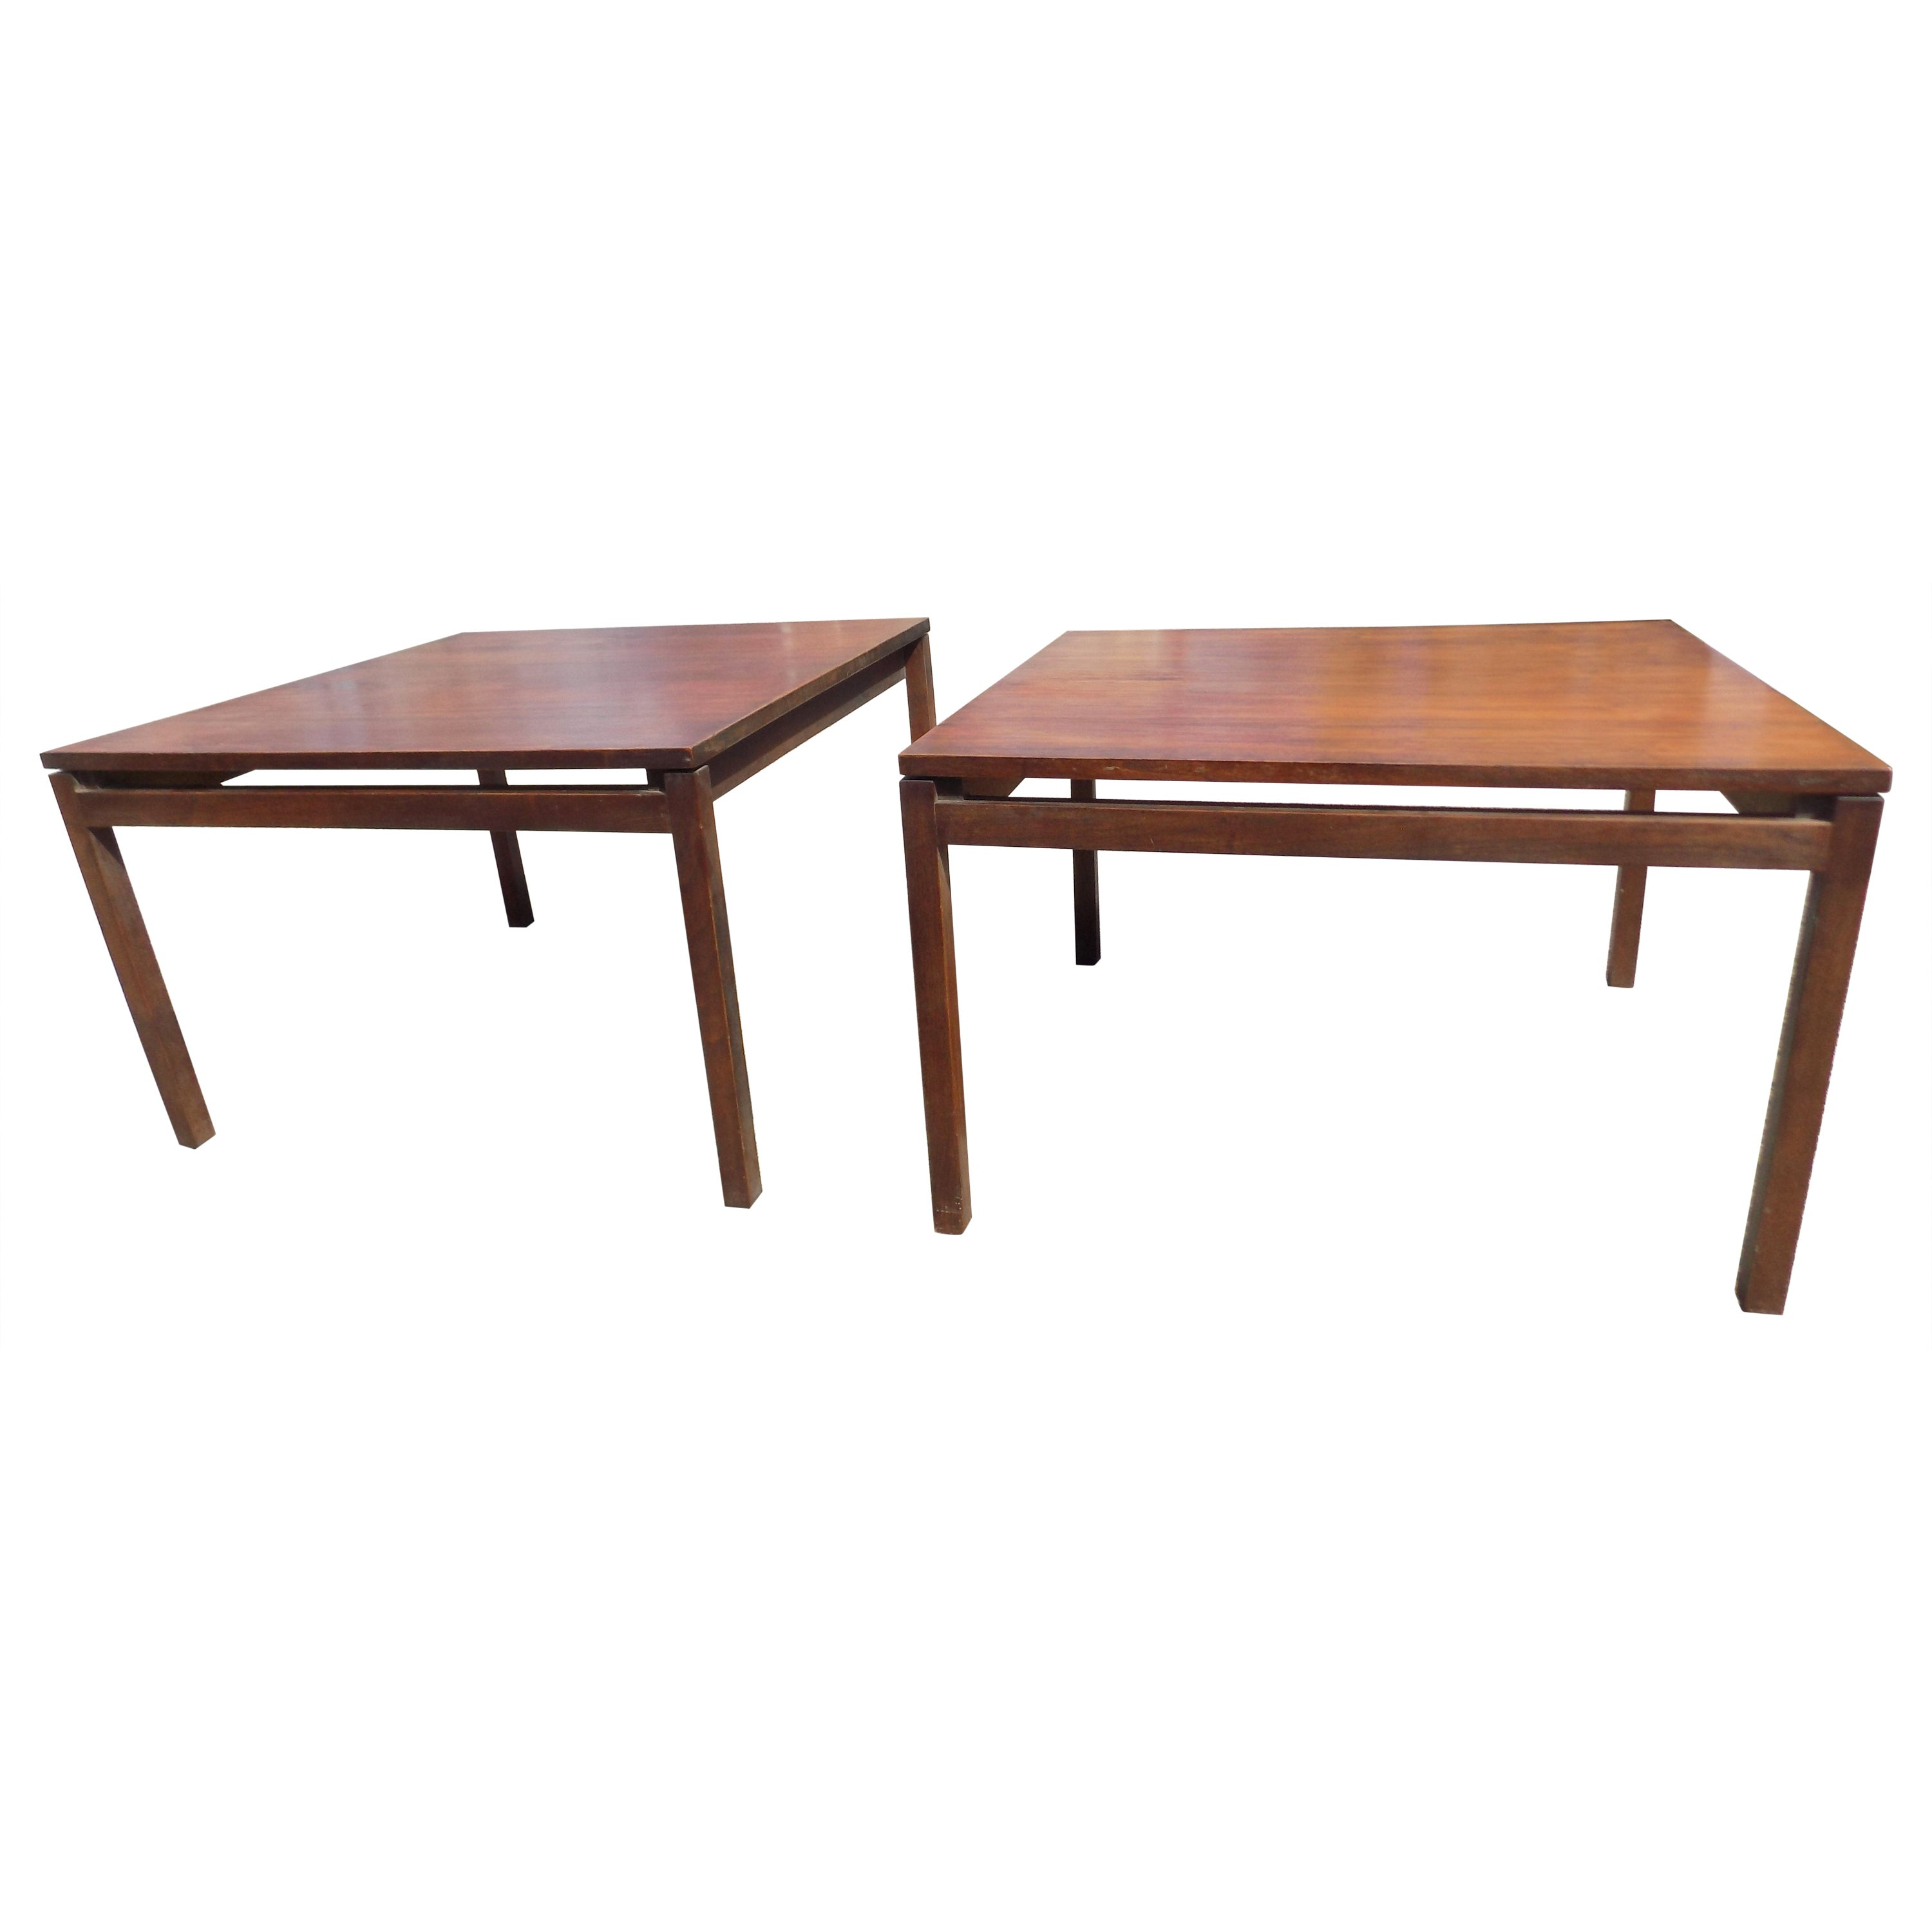 Pair of Rosewood Mid-Century Modern Knoll End or Coffee Tables